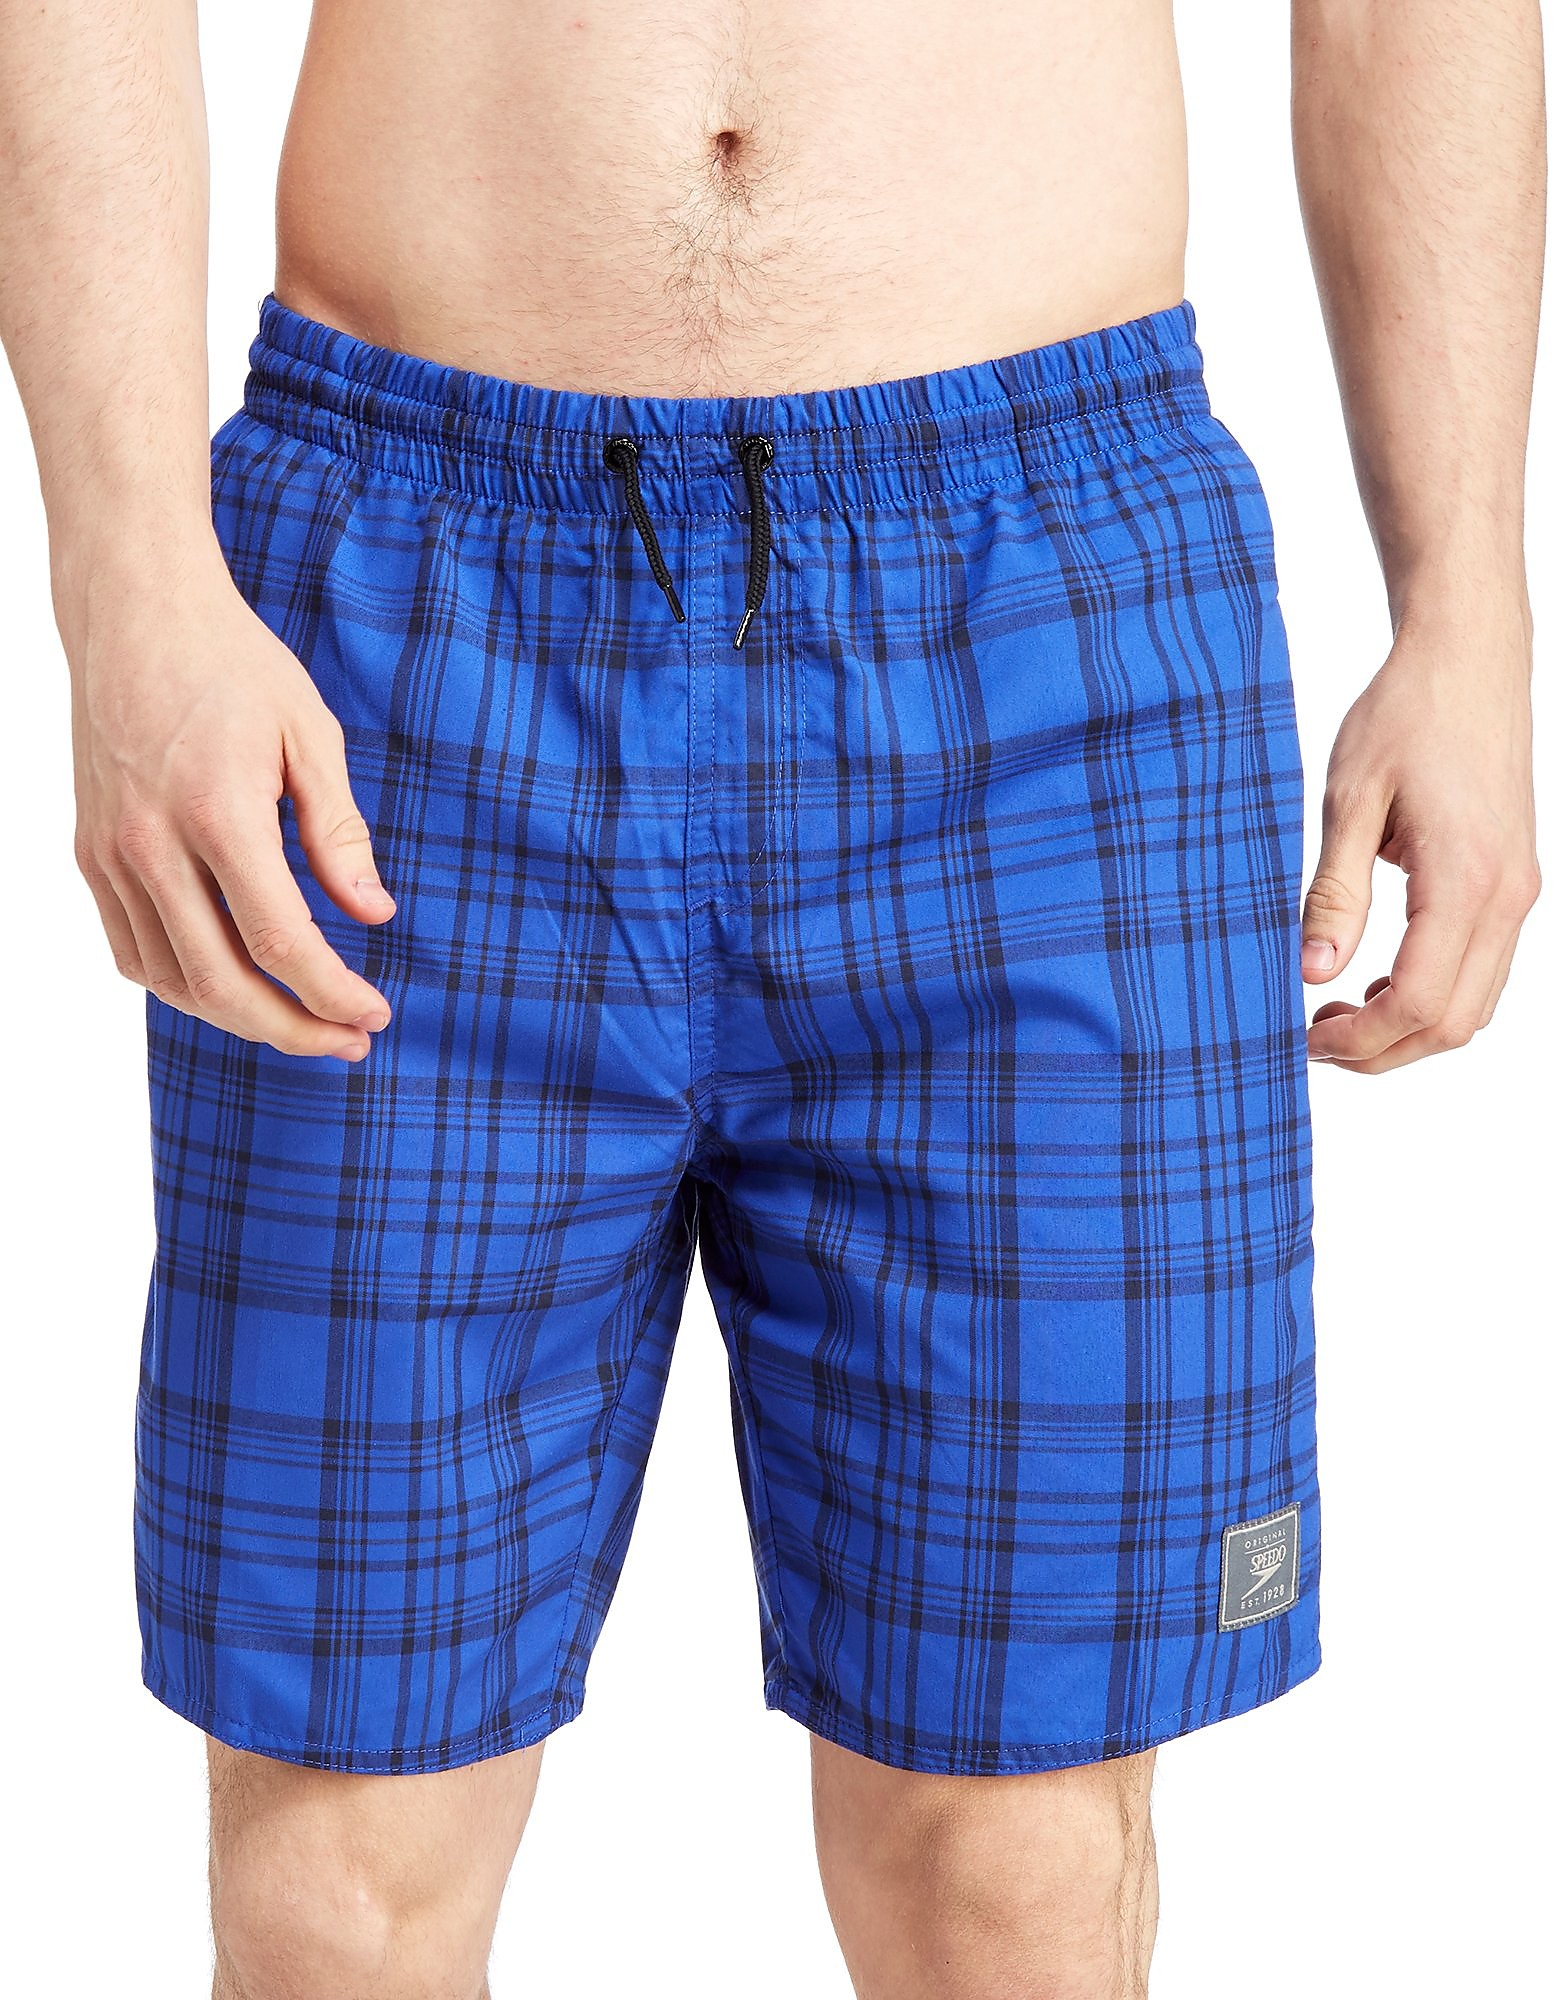 Speedo 18 Inch Check Swim Shorts